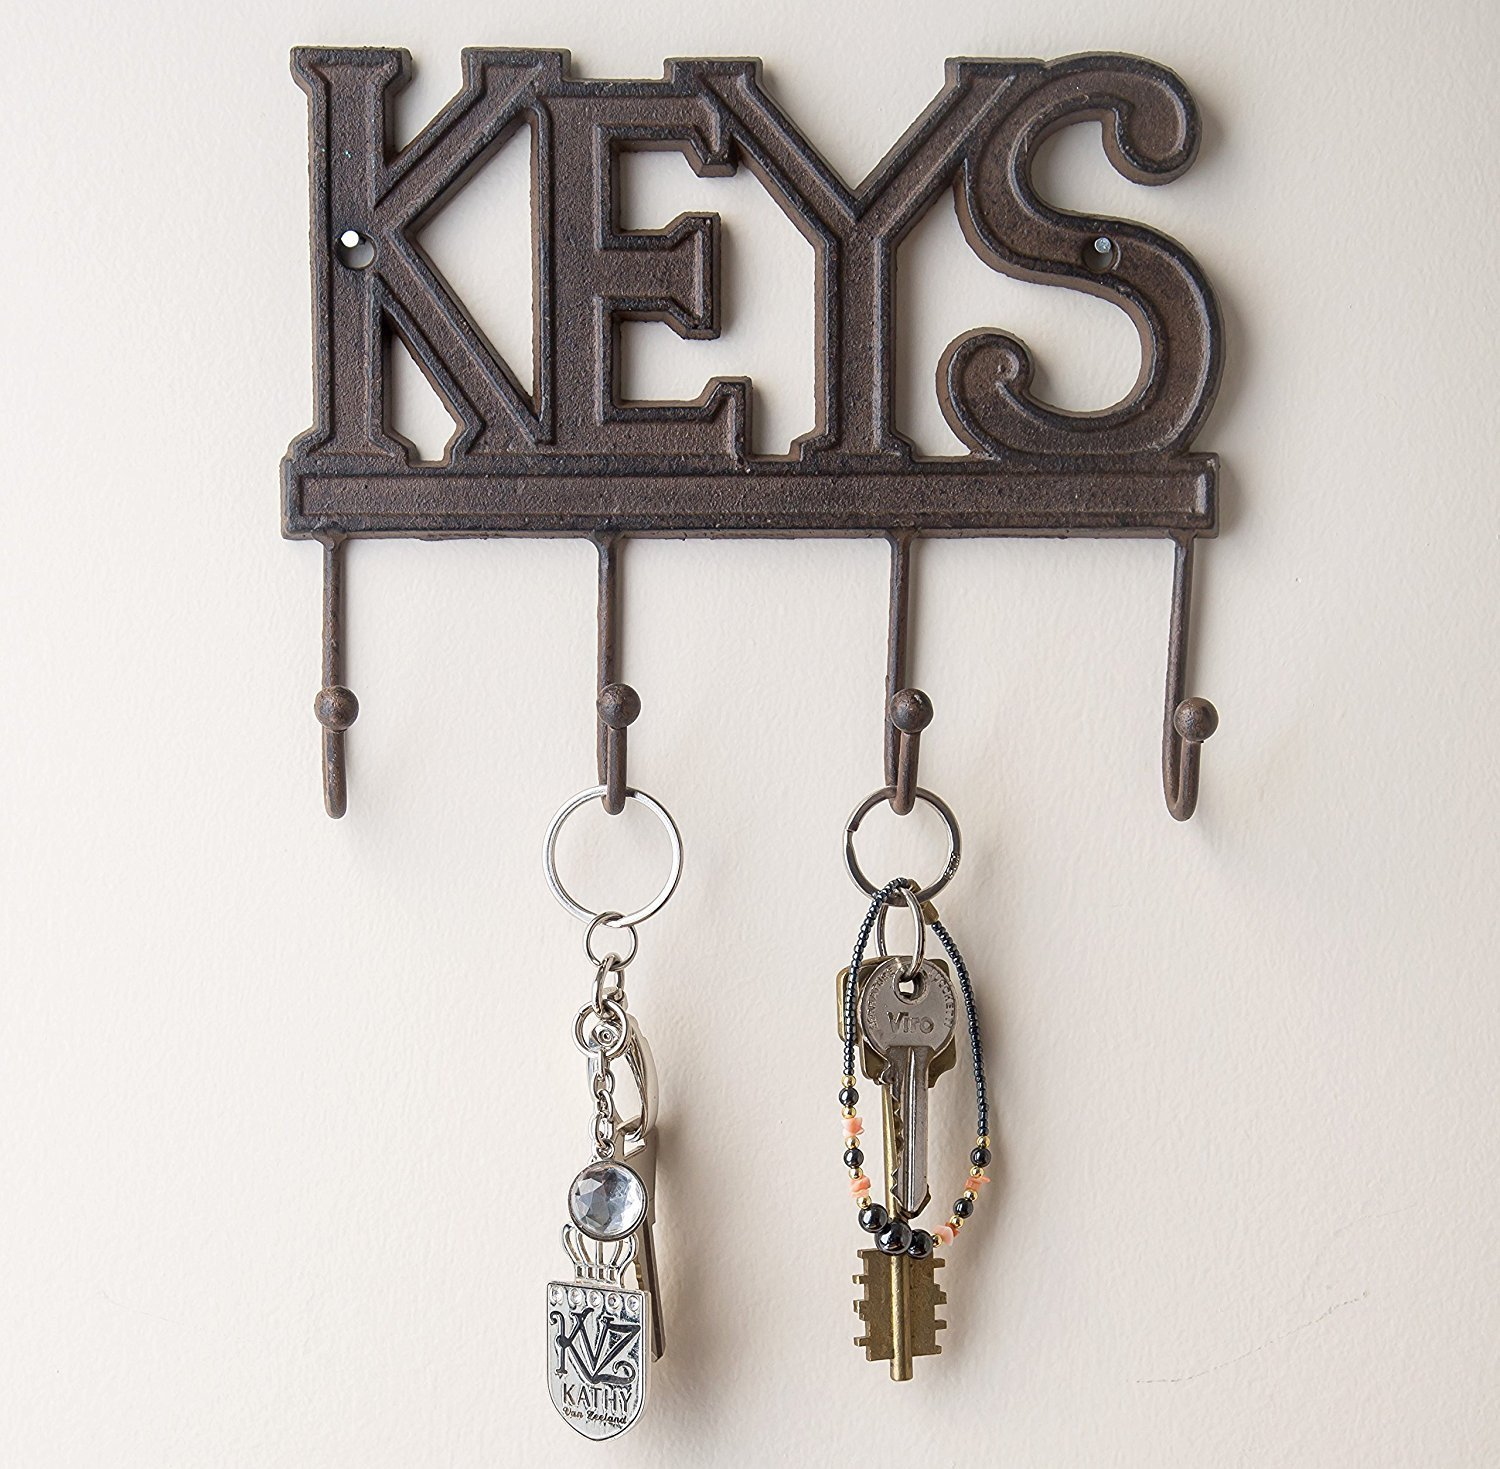 Key Holder   Keys   Wall Mounted Key Hook   Rustic Western Cast Iron Key  Hanger   Decorative Key Organizer Rack With 4 Hooks   With Screws And  Anchors   6x8 ...